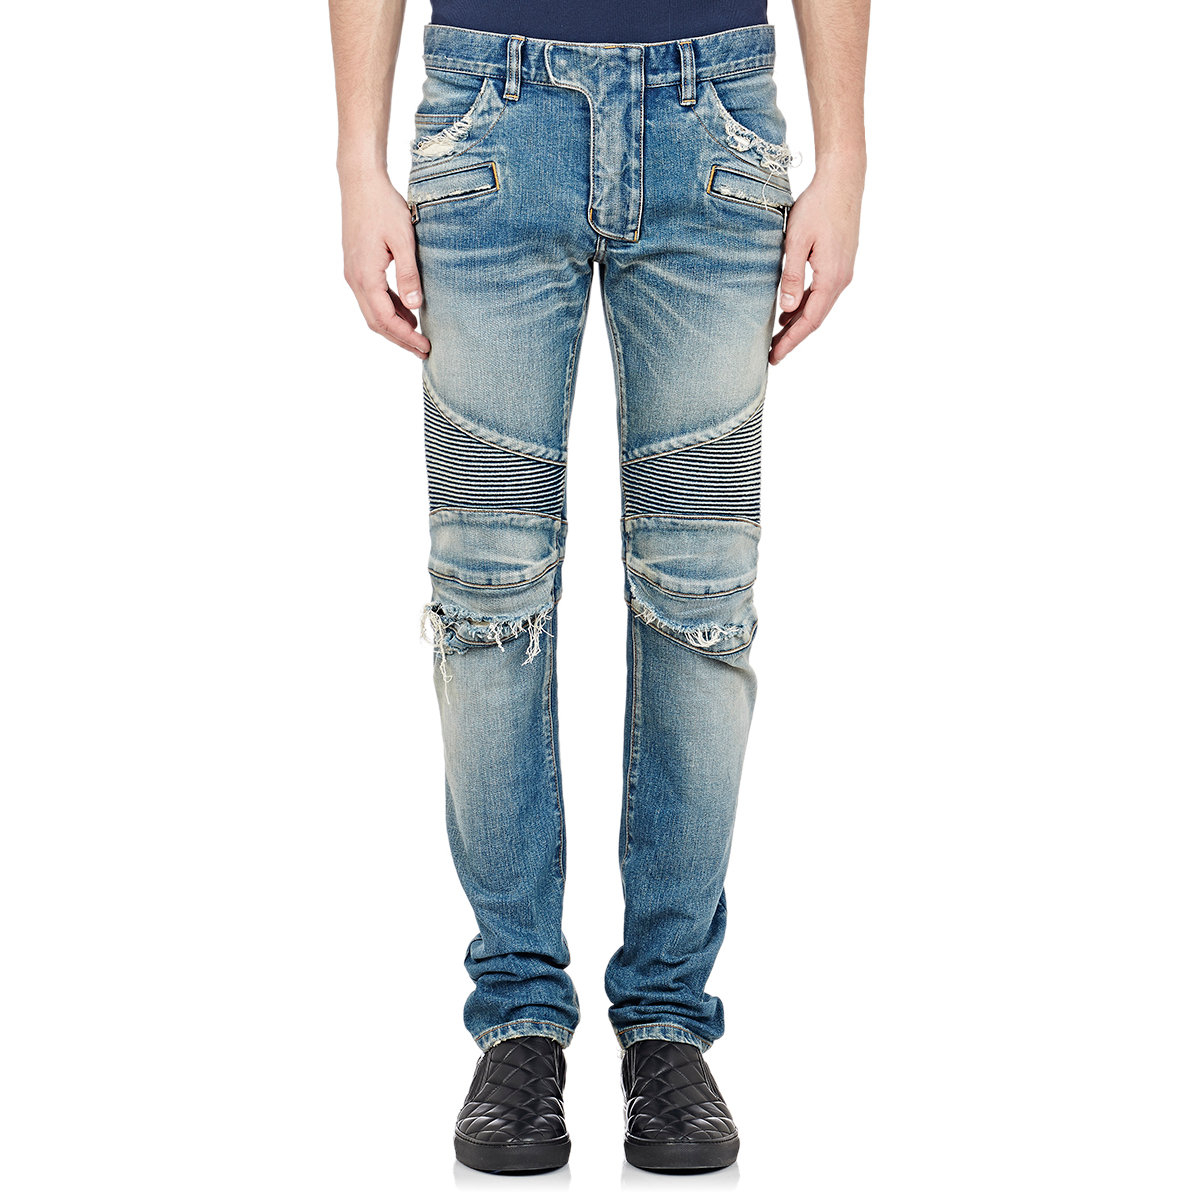 Find mens moto jeans at Macy's Macy's Presents: The Edit - A curated mix of fashion and inspiration Check It Out Free Shipping with $75 purchase + Free Store Pickup.